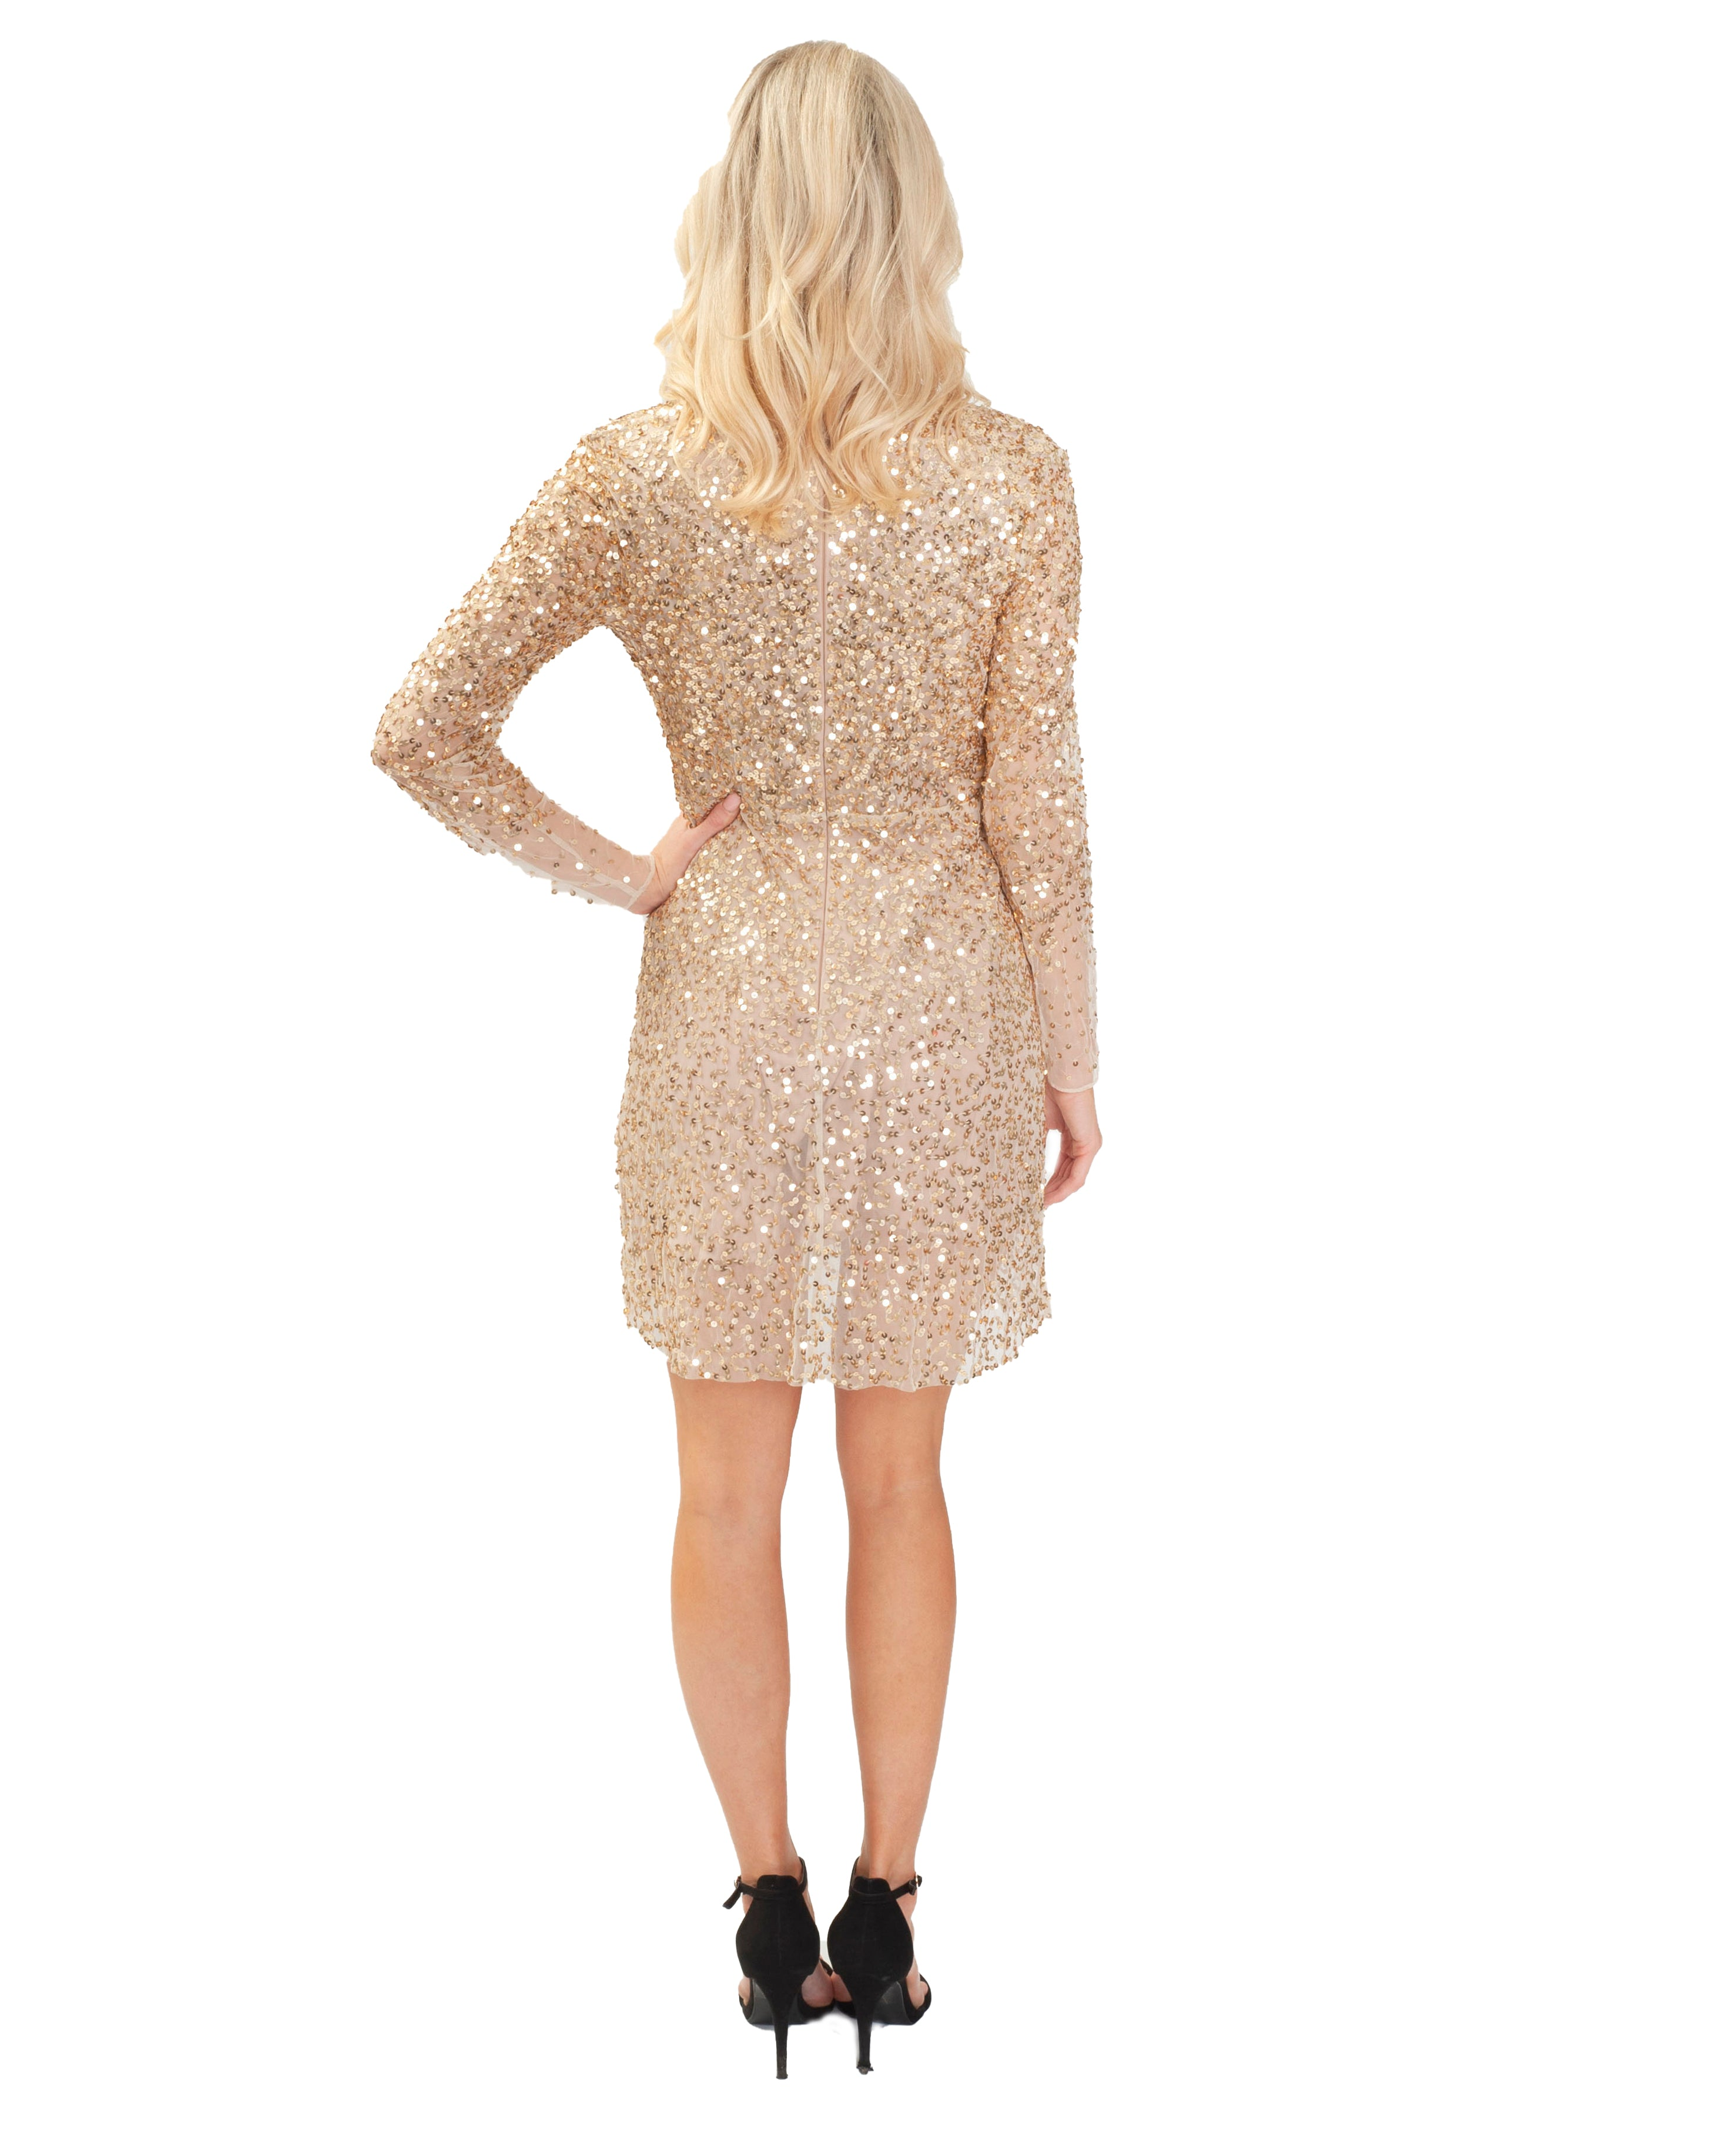 FRENCH CONNECTION EMILLE SPARKLE SHORT GOLD DRESS